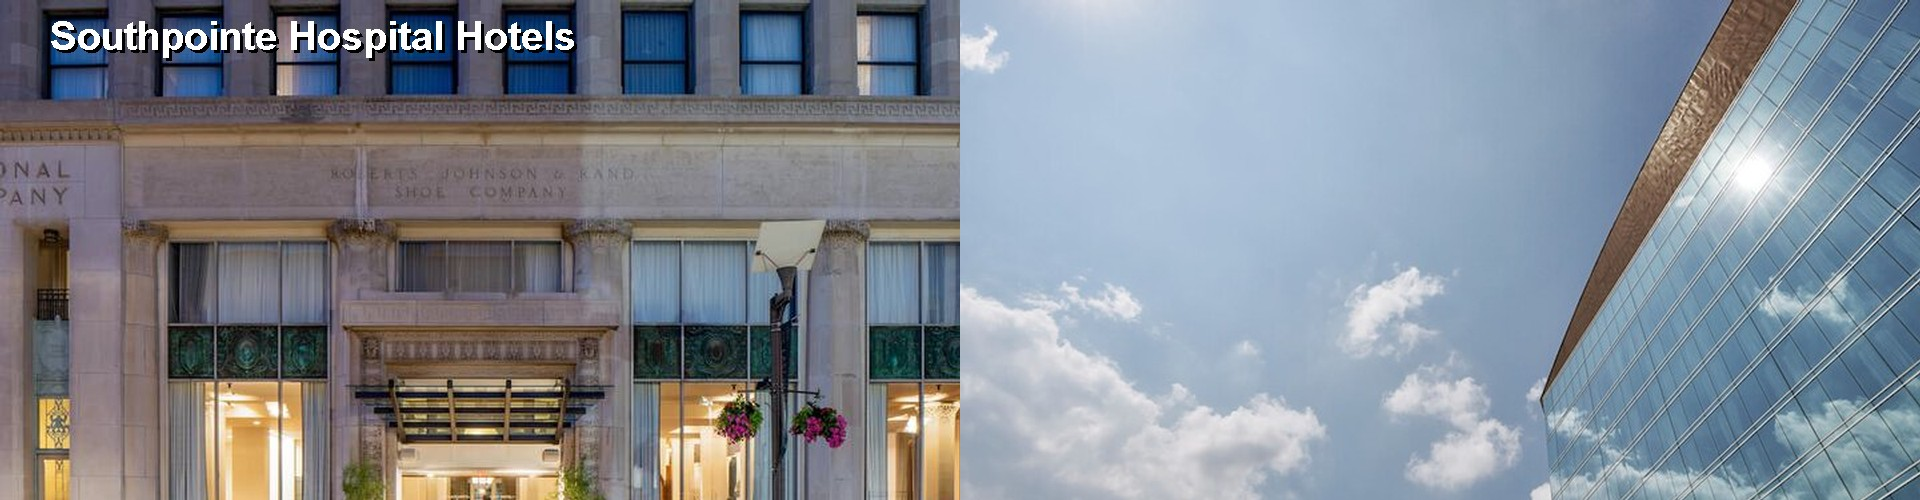 5 Best Hotels near Southpointe Hospital